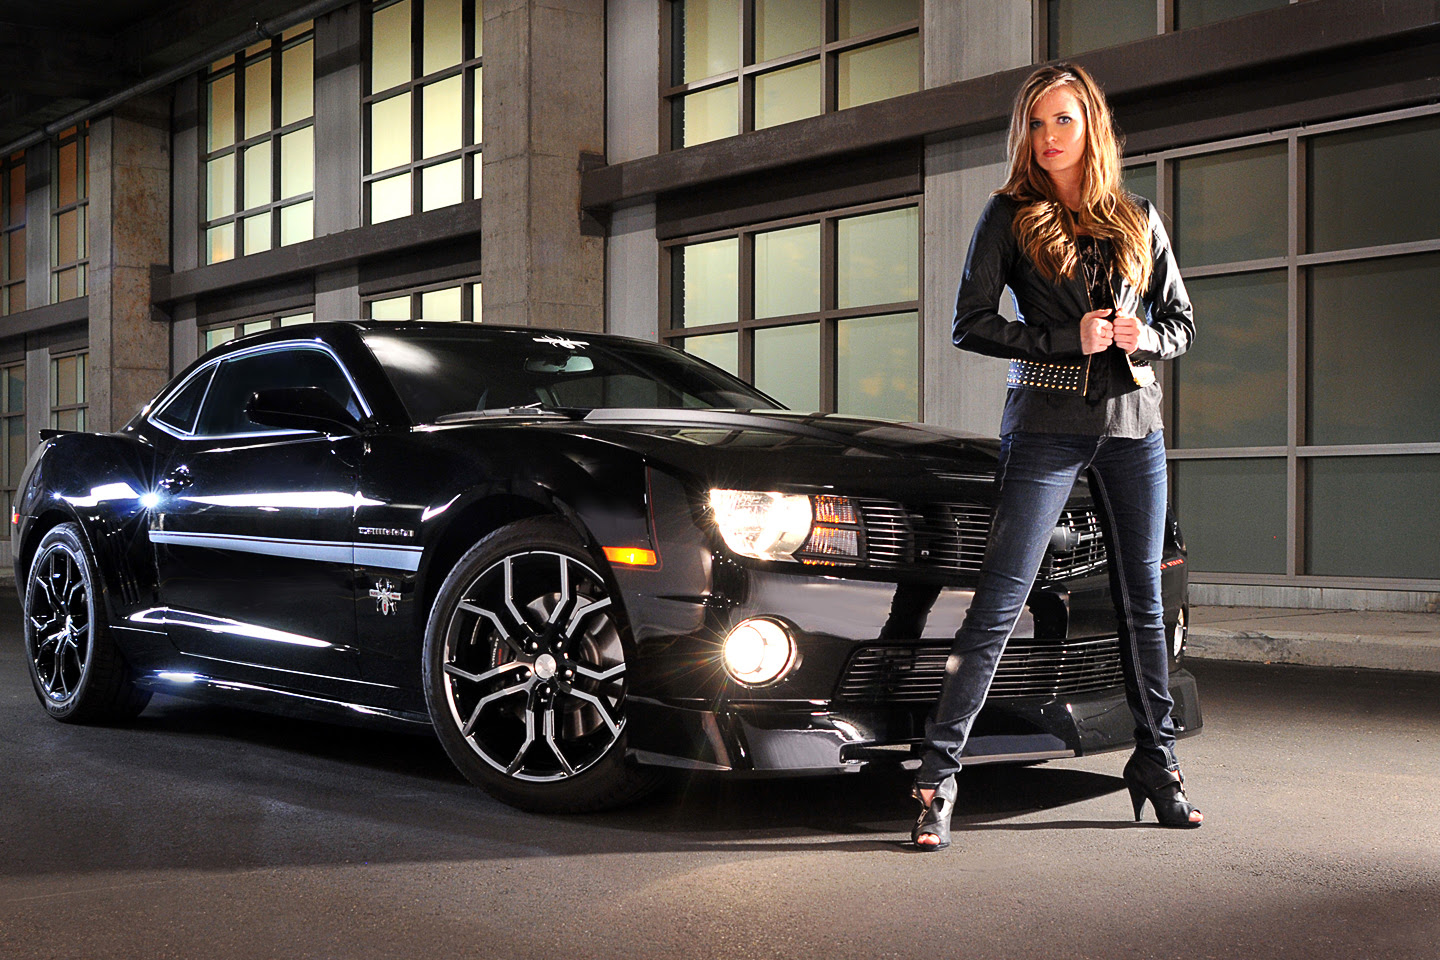 Girls Buy Cars Wallpapers High Quality | Download Free